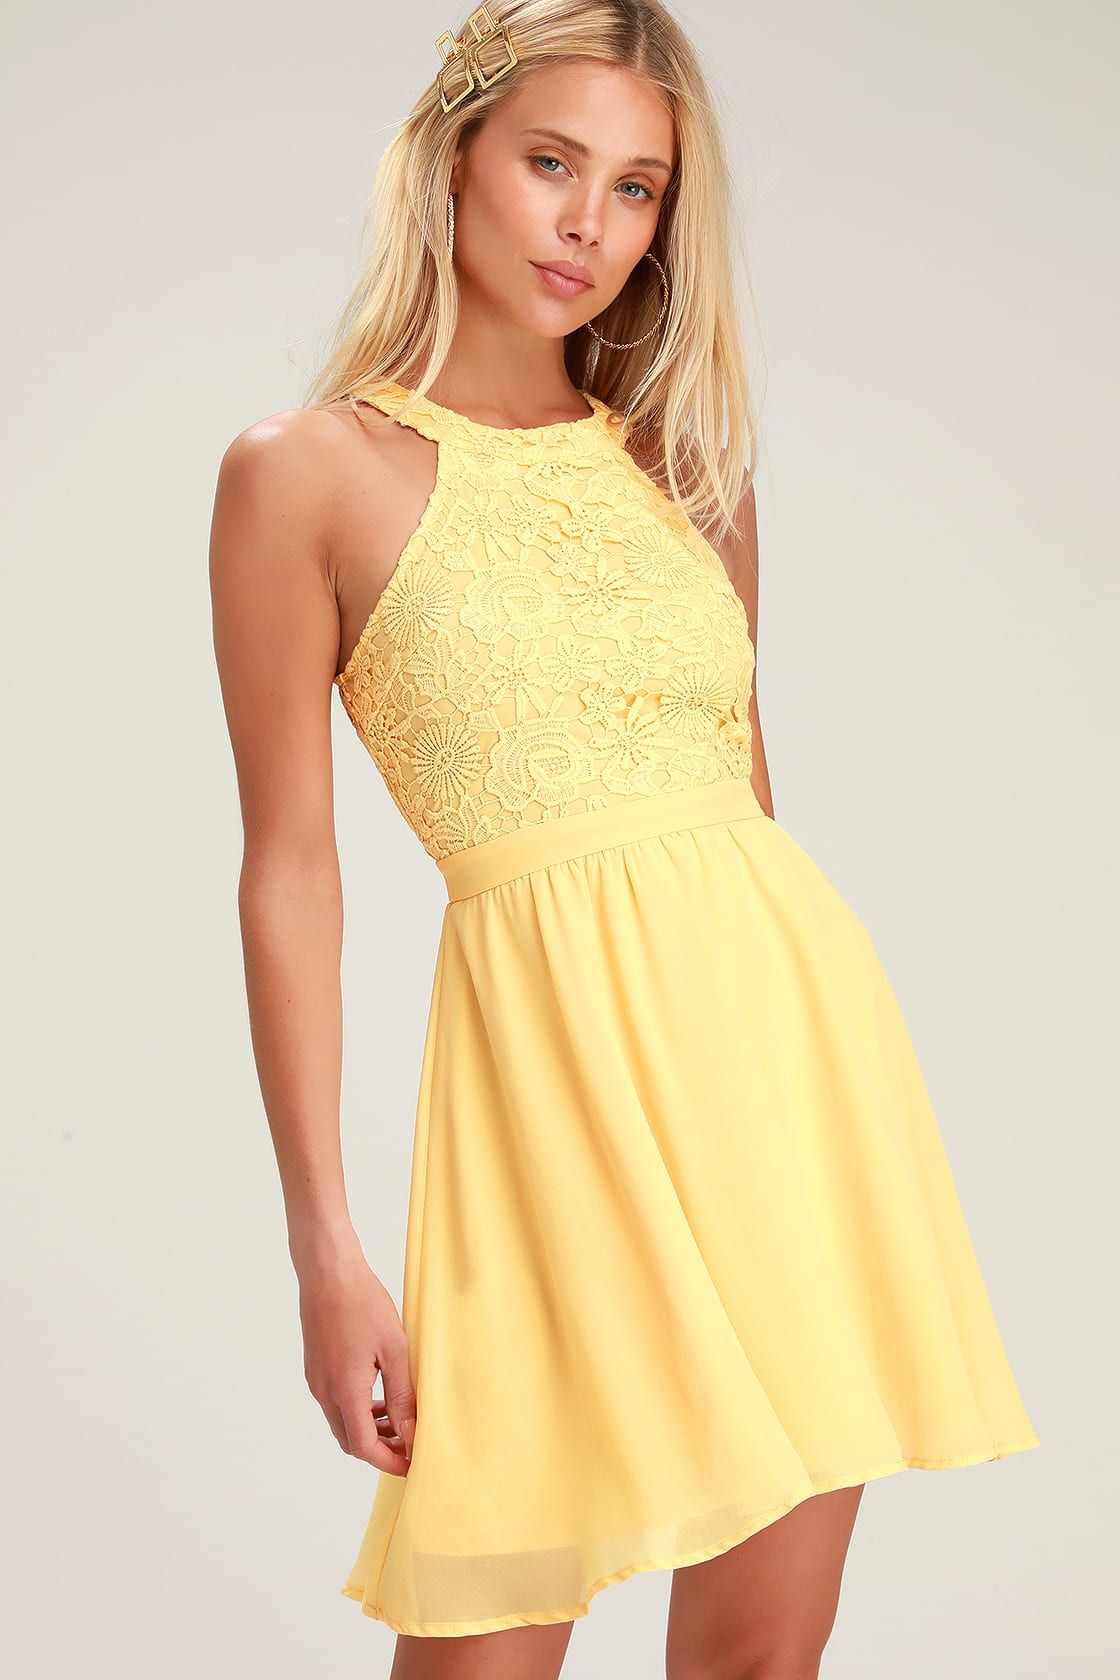 Lovers game light yellow lace skater dress lace skater